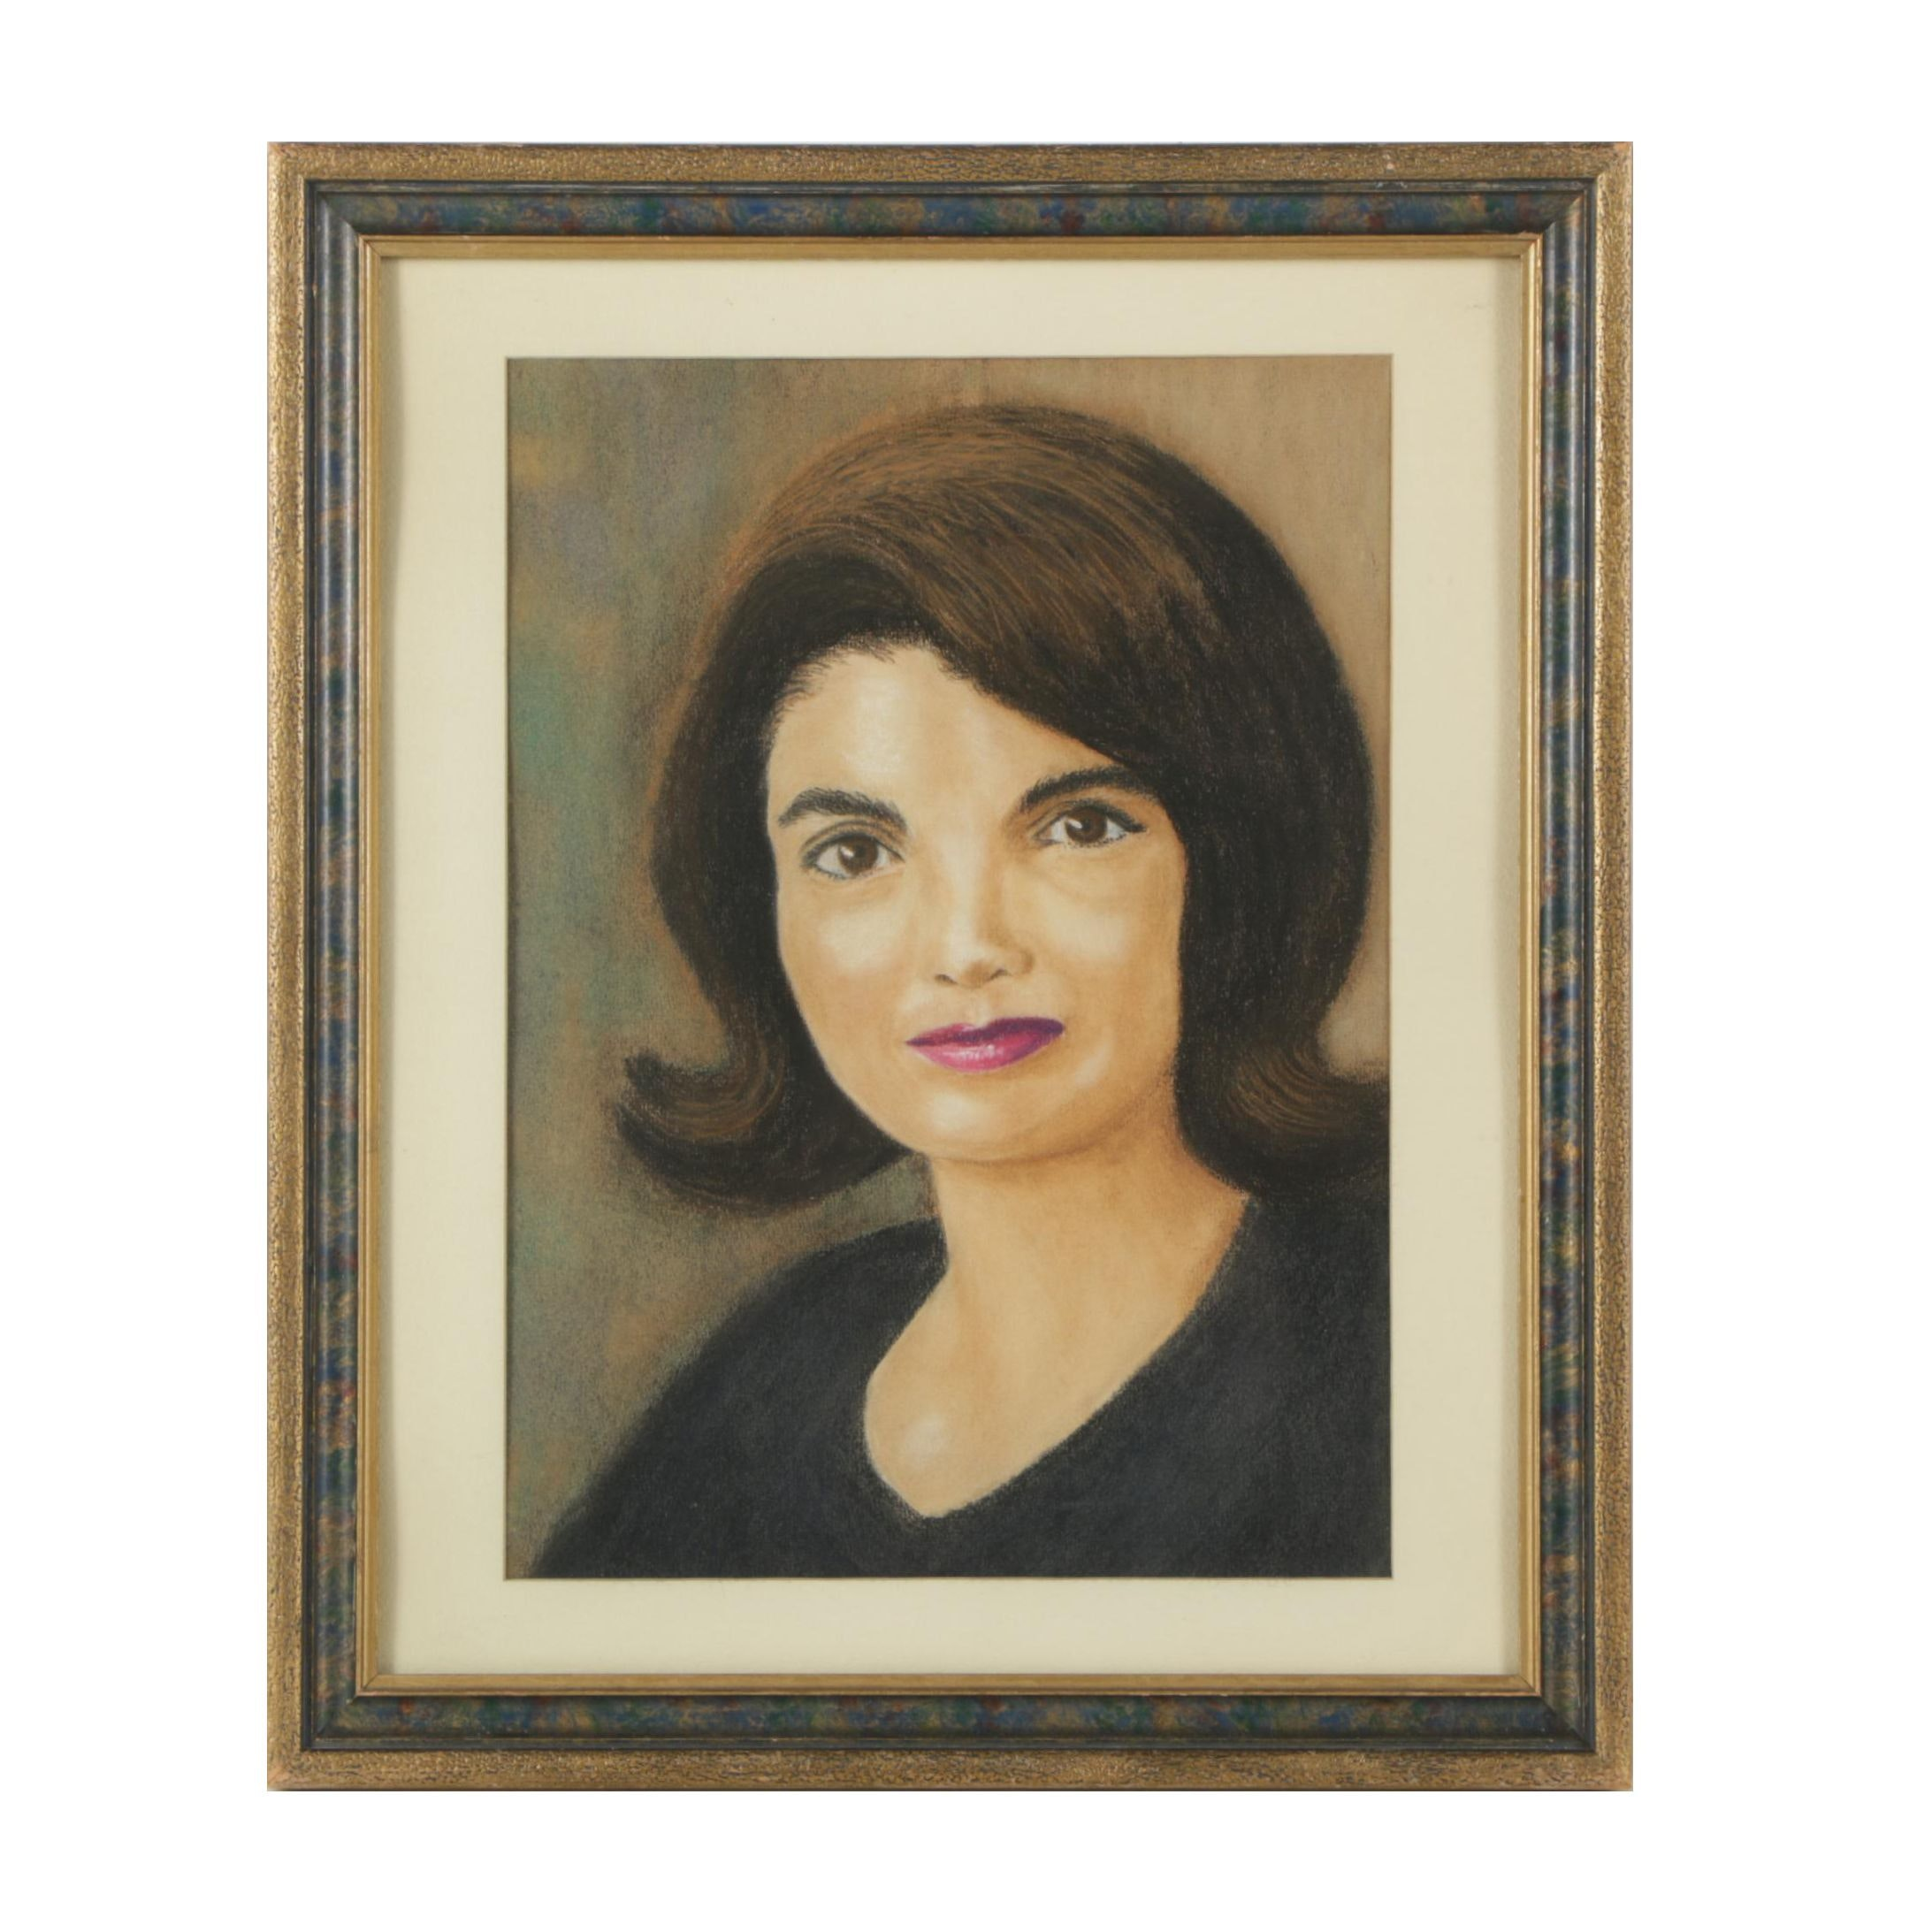 Pastel Drawing of Jacqueline Kennedy Onassis